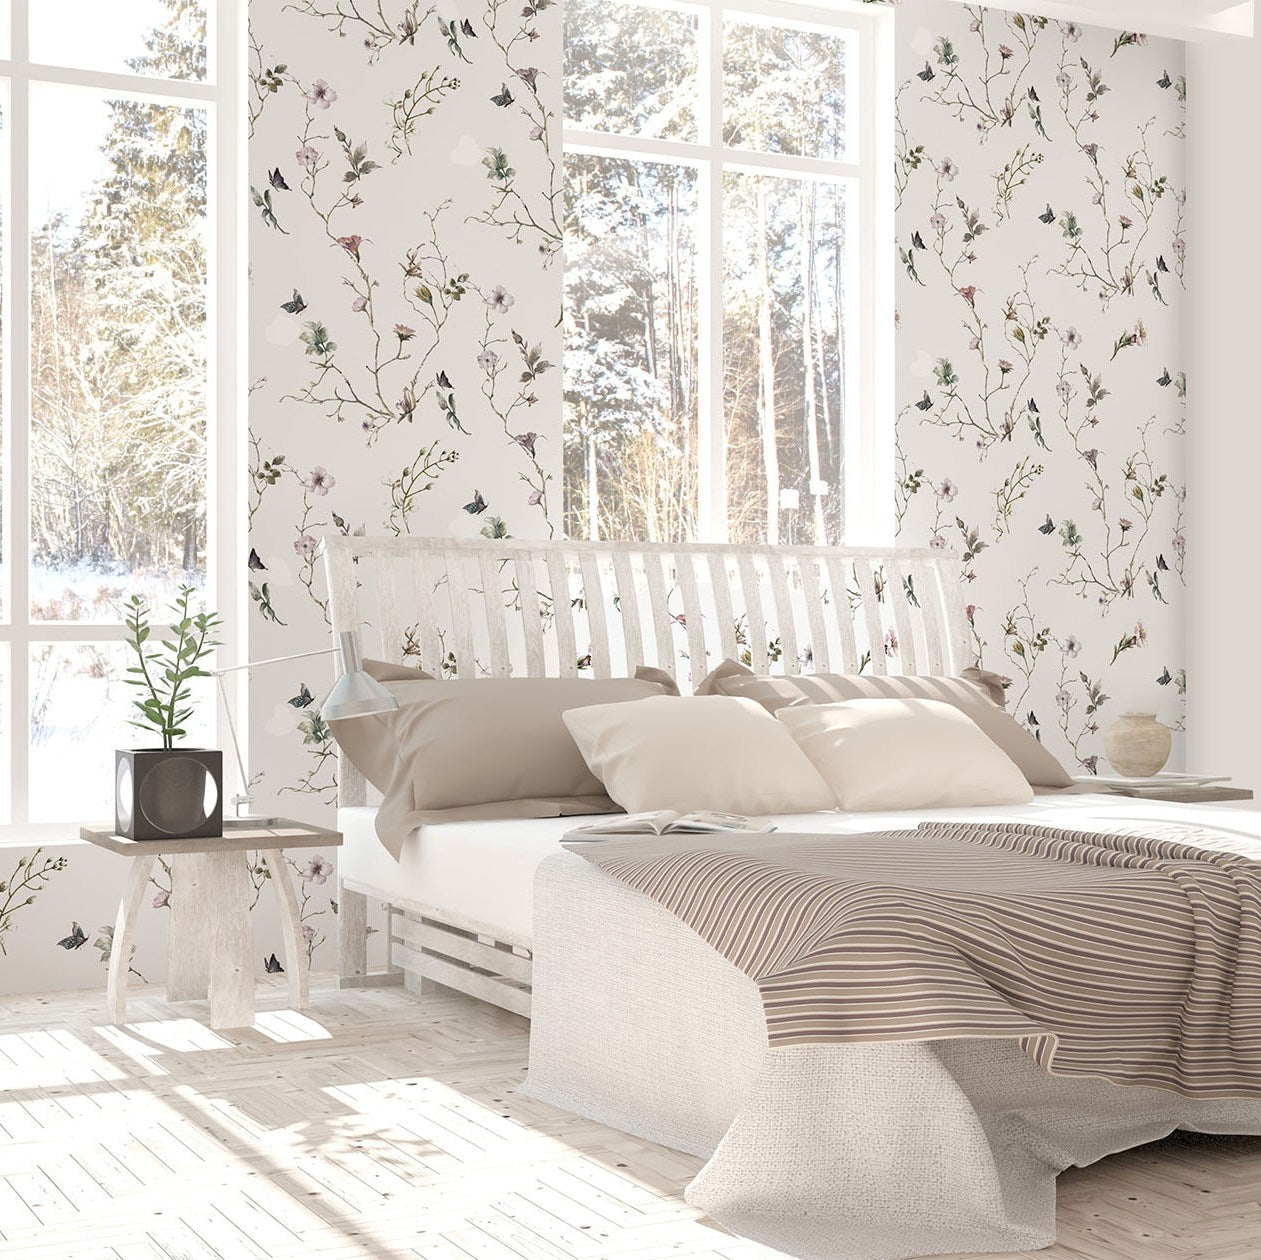 White Story in Olbia Mural Wallpaper (SqM)